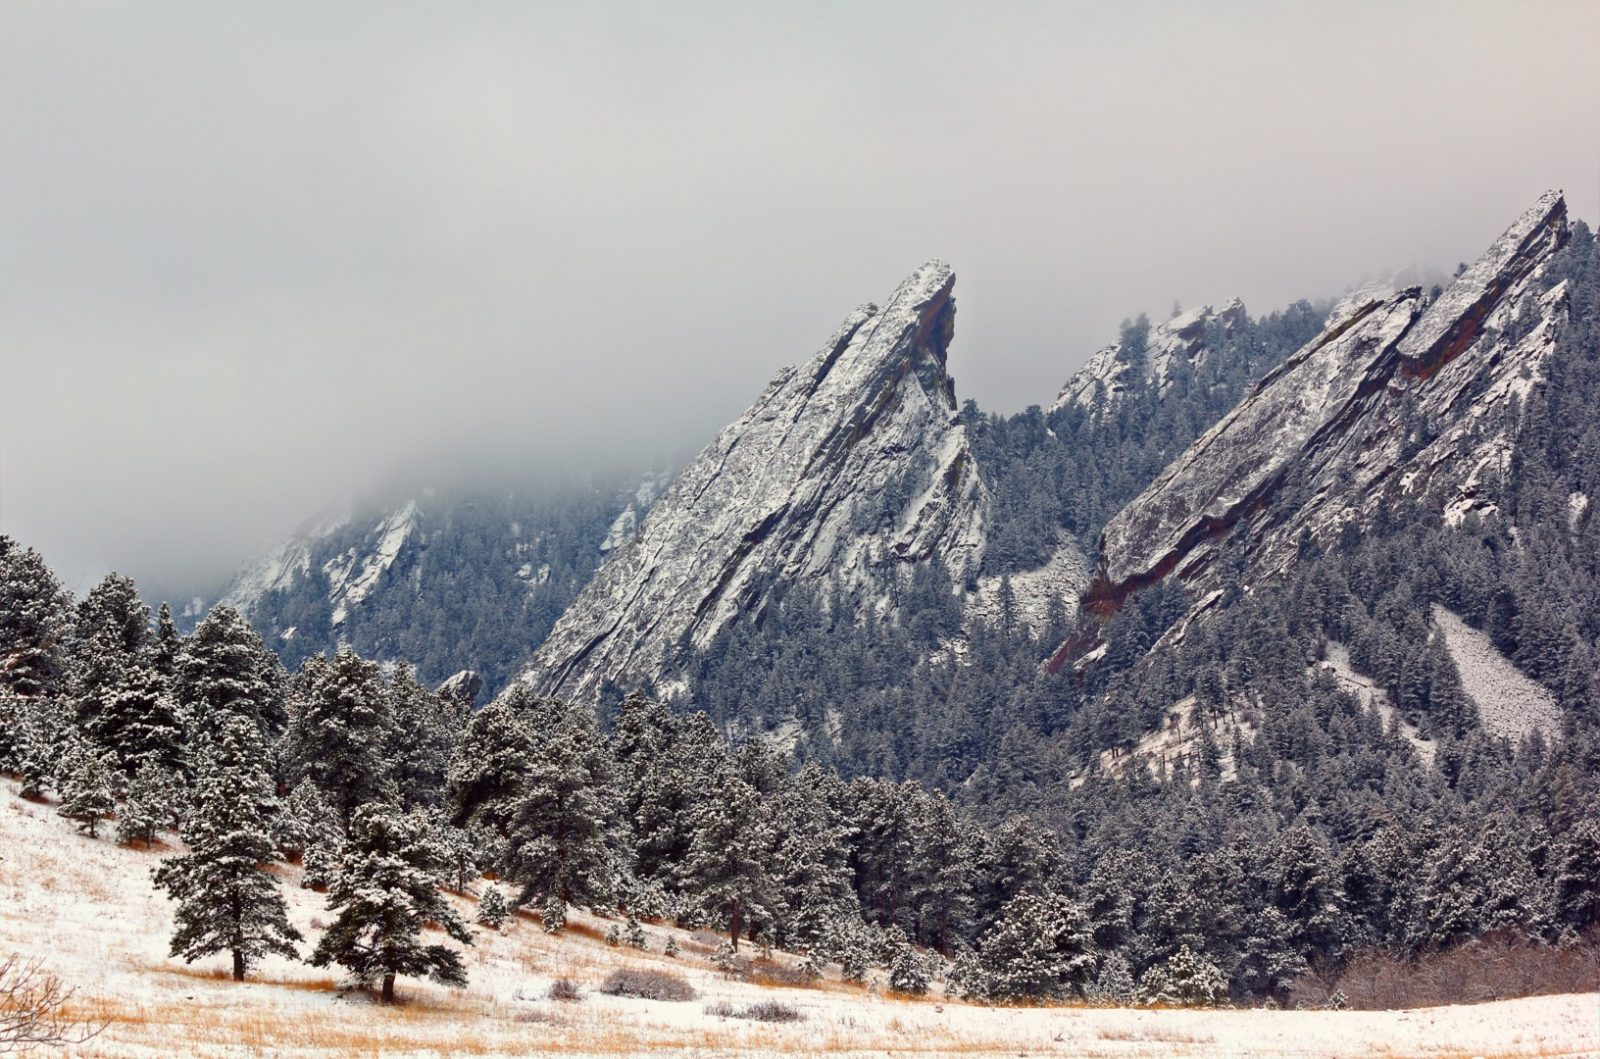 Flat Irons in the Fog